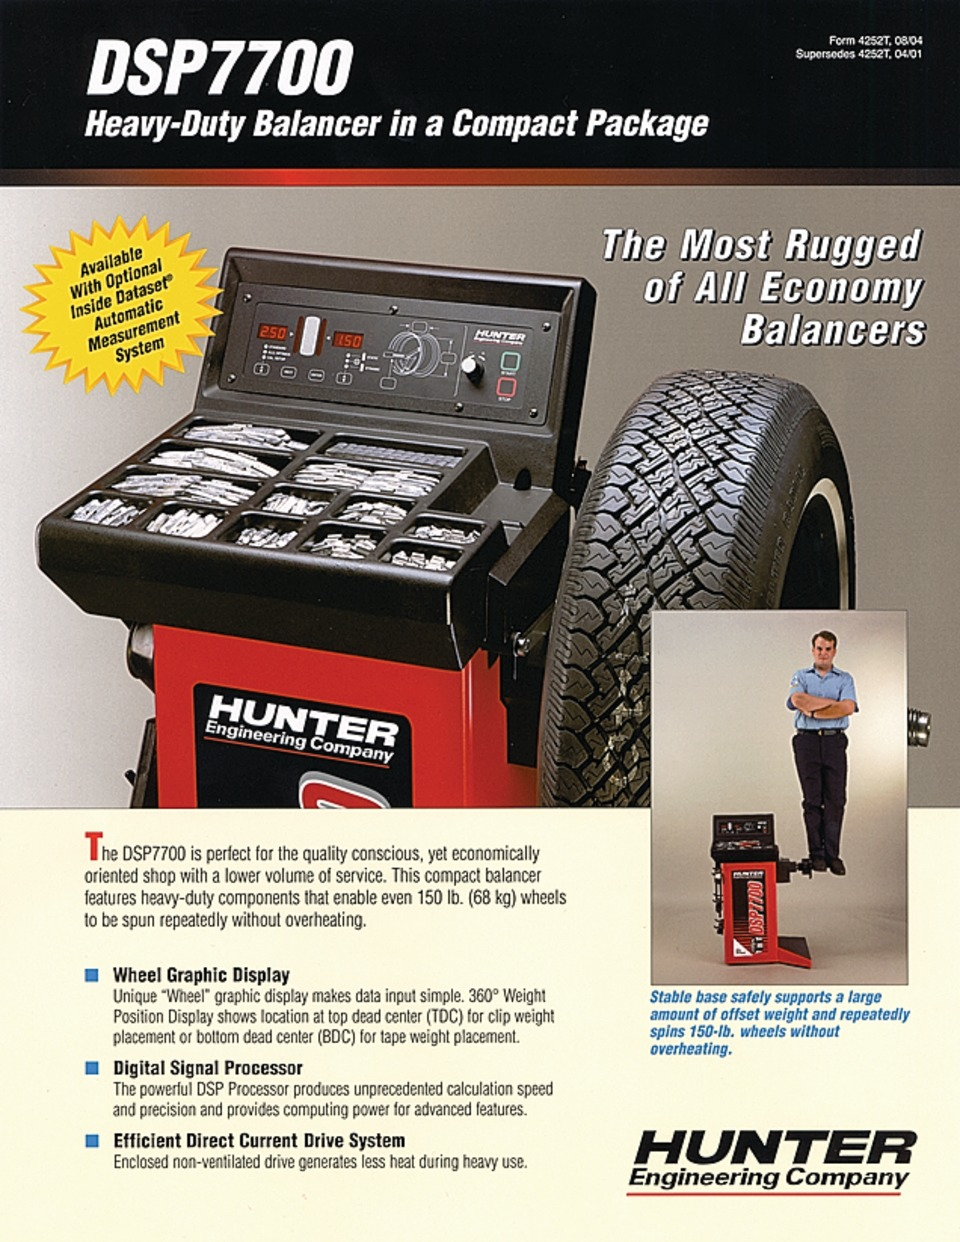 Hunter Engineering Company DSP7700 Wheel Balancer Literature in Training  Catalogs, Manuals, Brochures